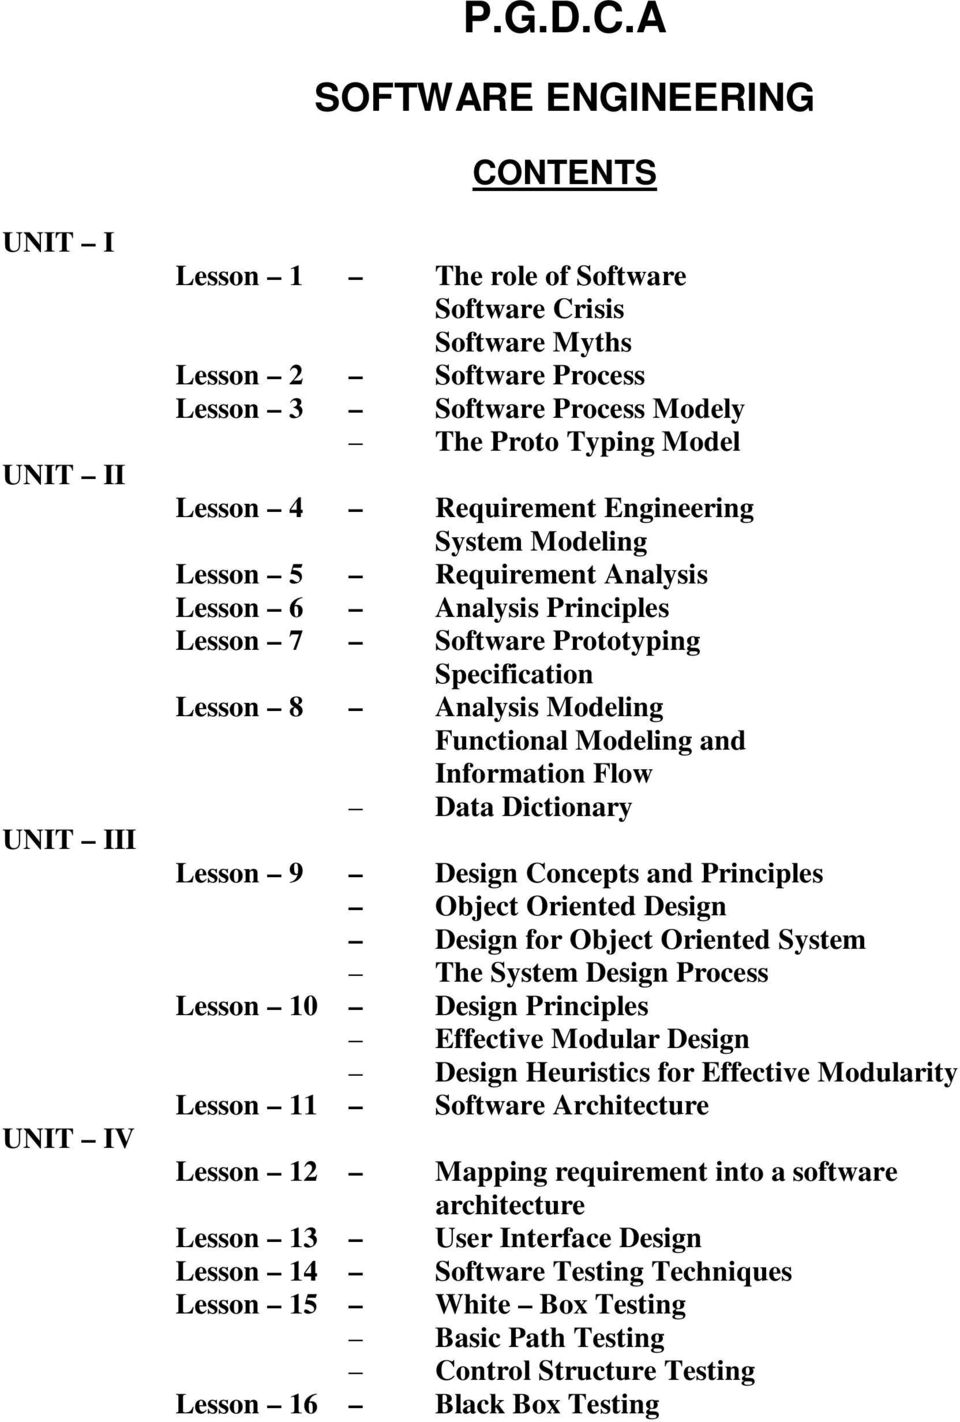 P G D C A Software Engineering Contents Pdf Free Download